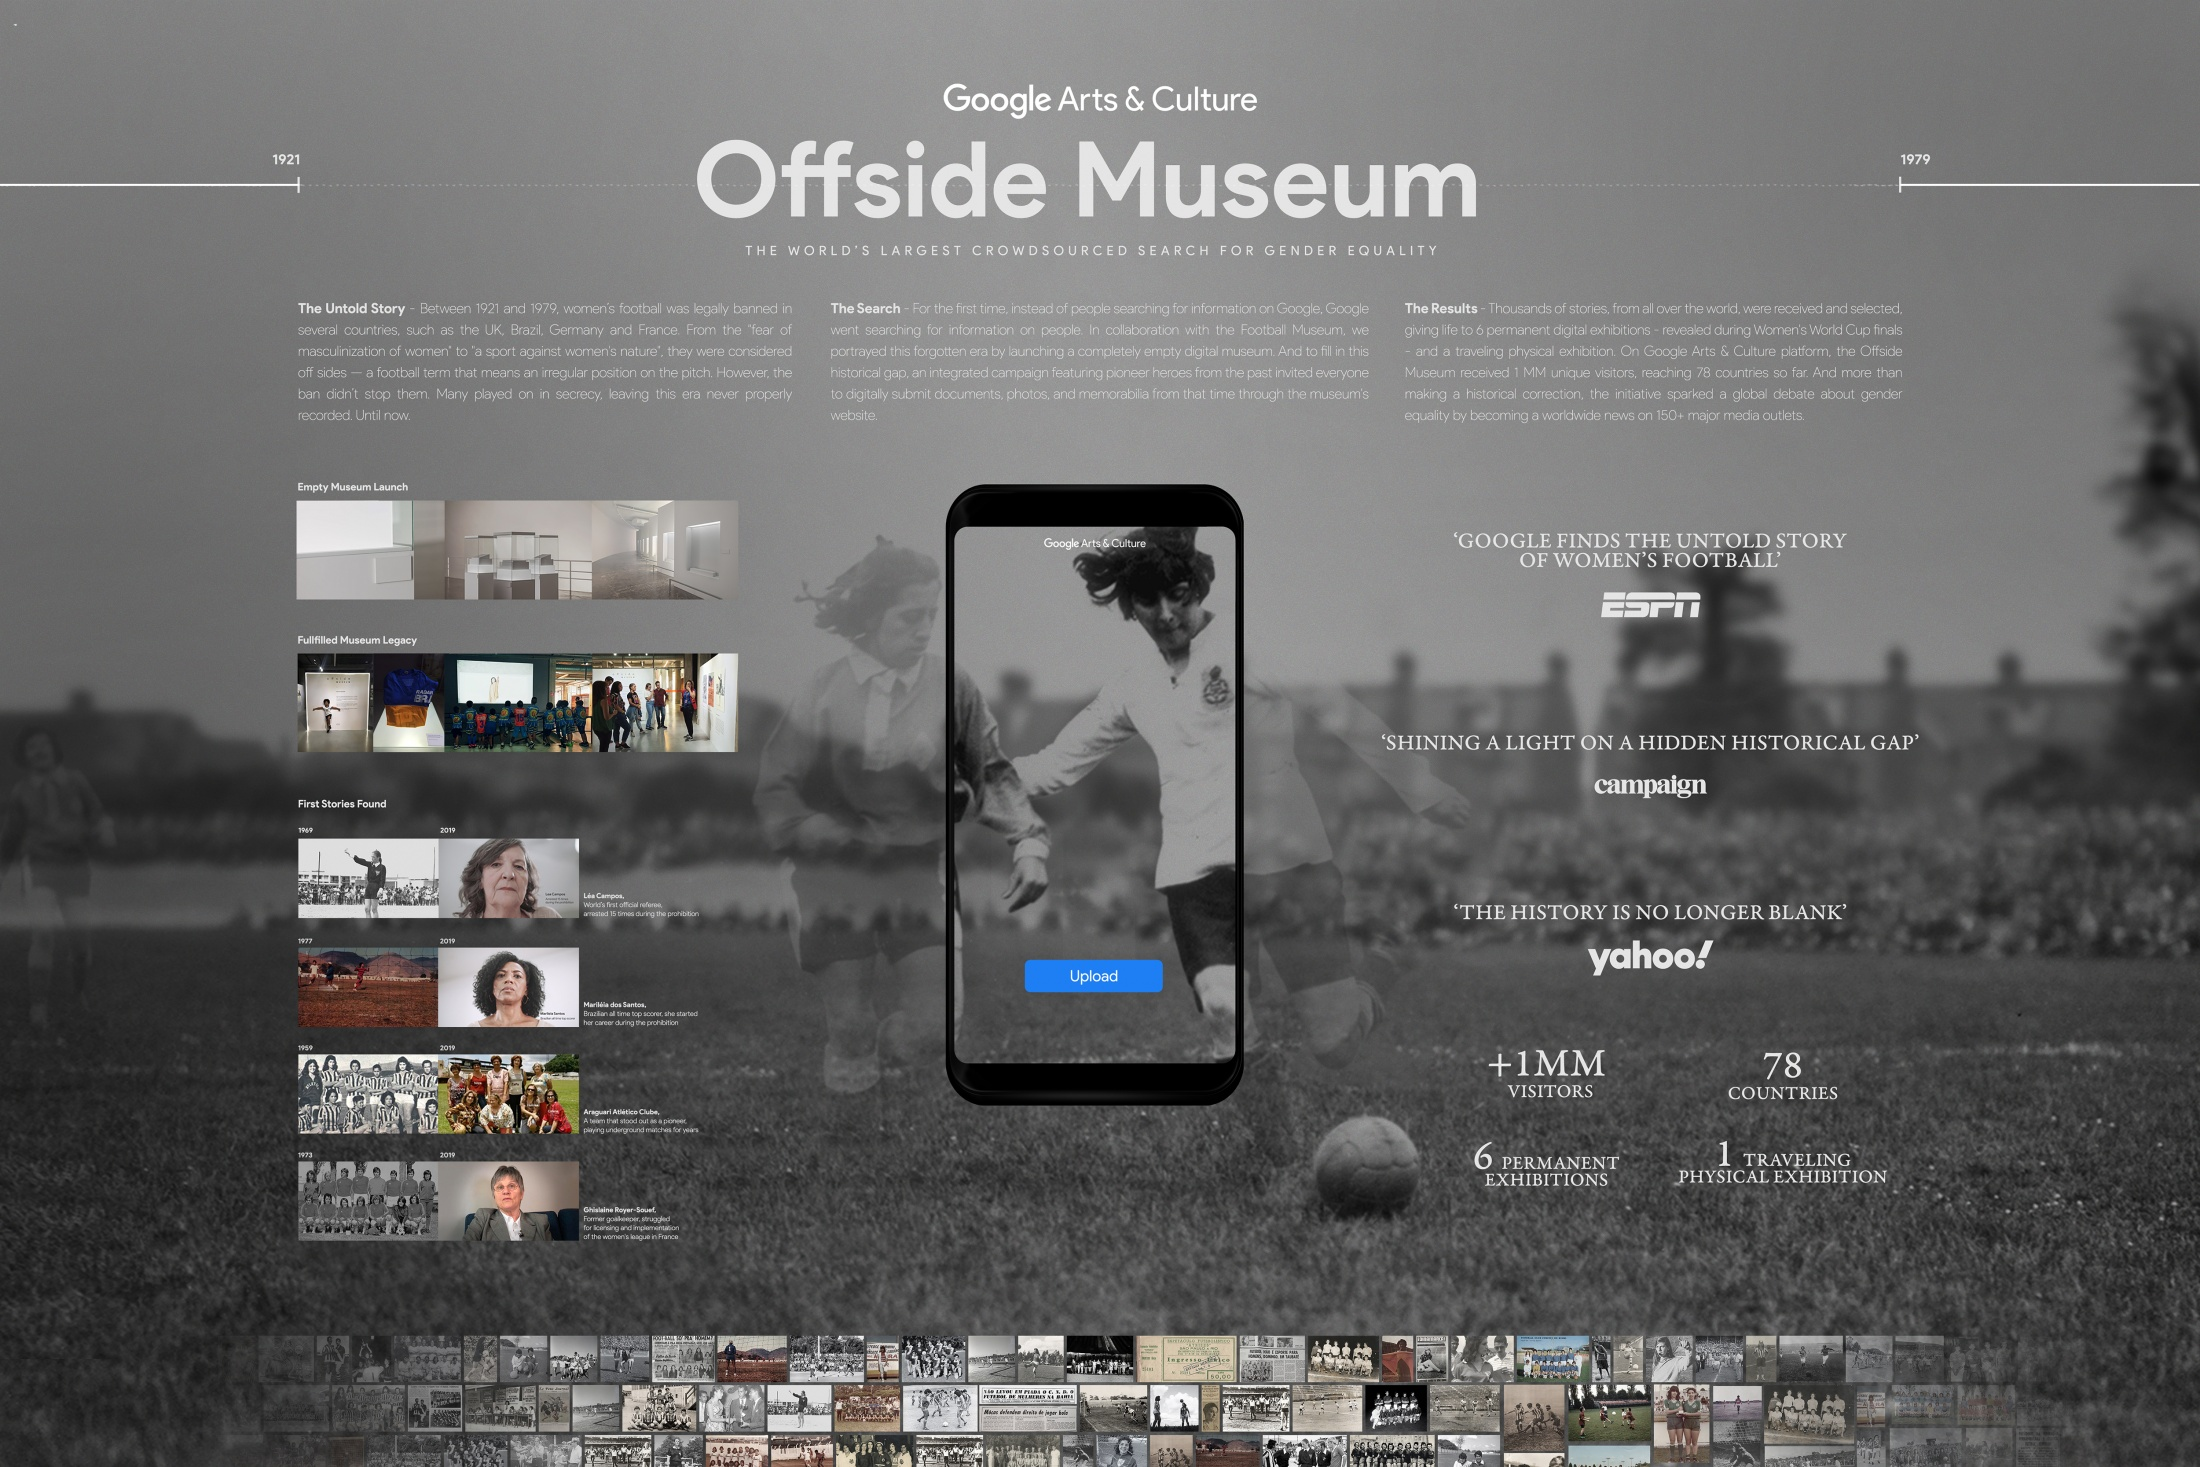 Thumbnail for Google Offside Museum